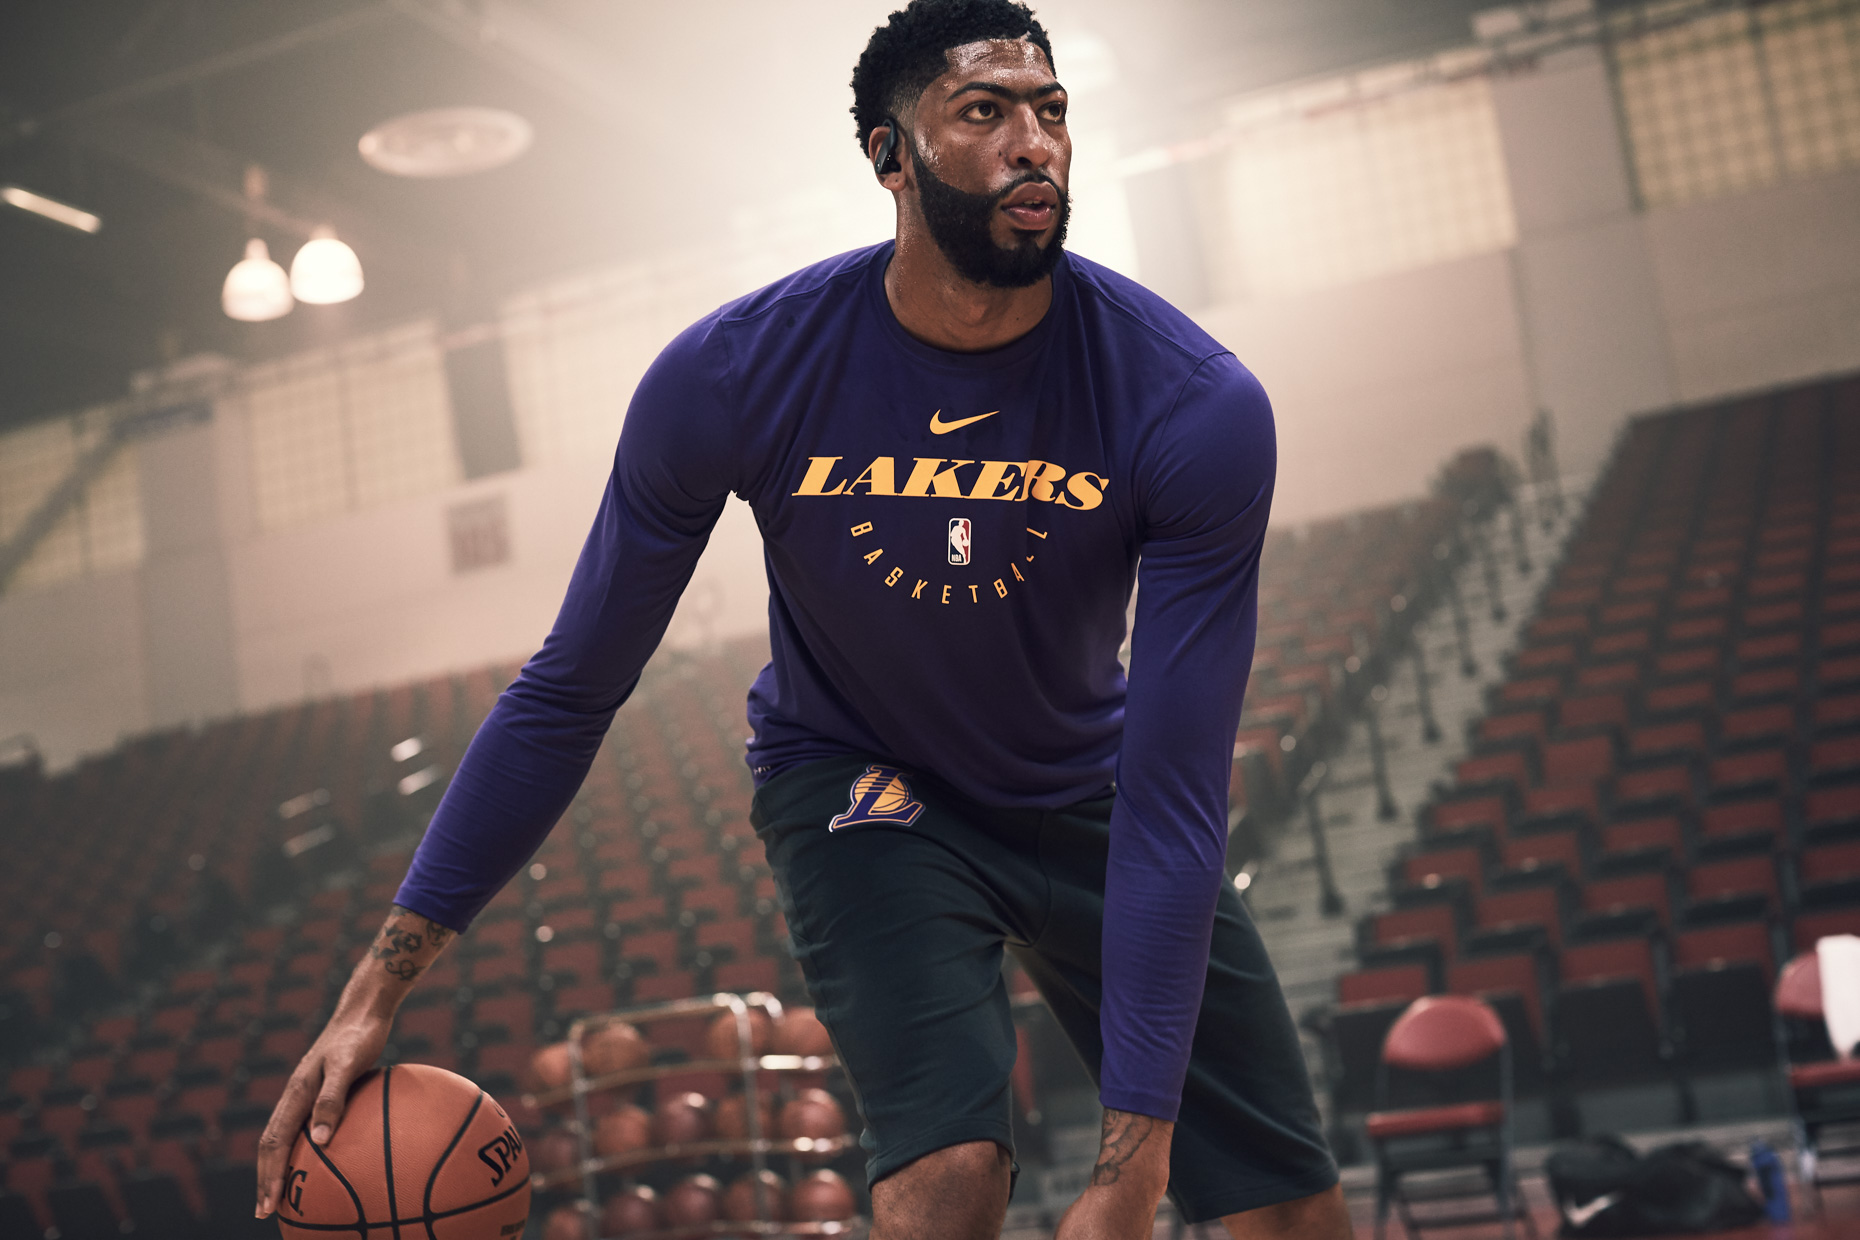 NBASEASON2_ANTHONYDAVIS_POWERBEATSPRO_BLACK_2000